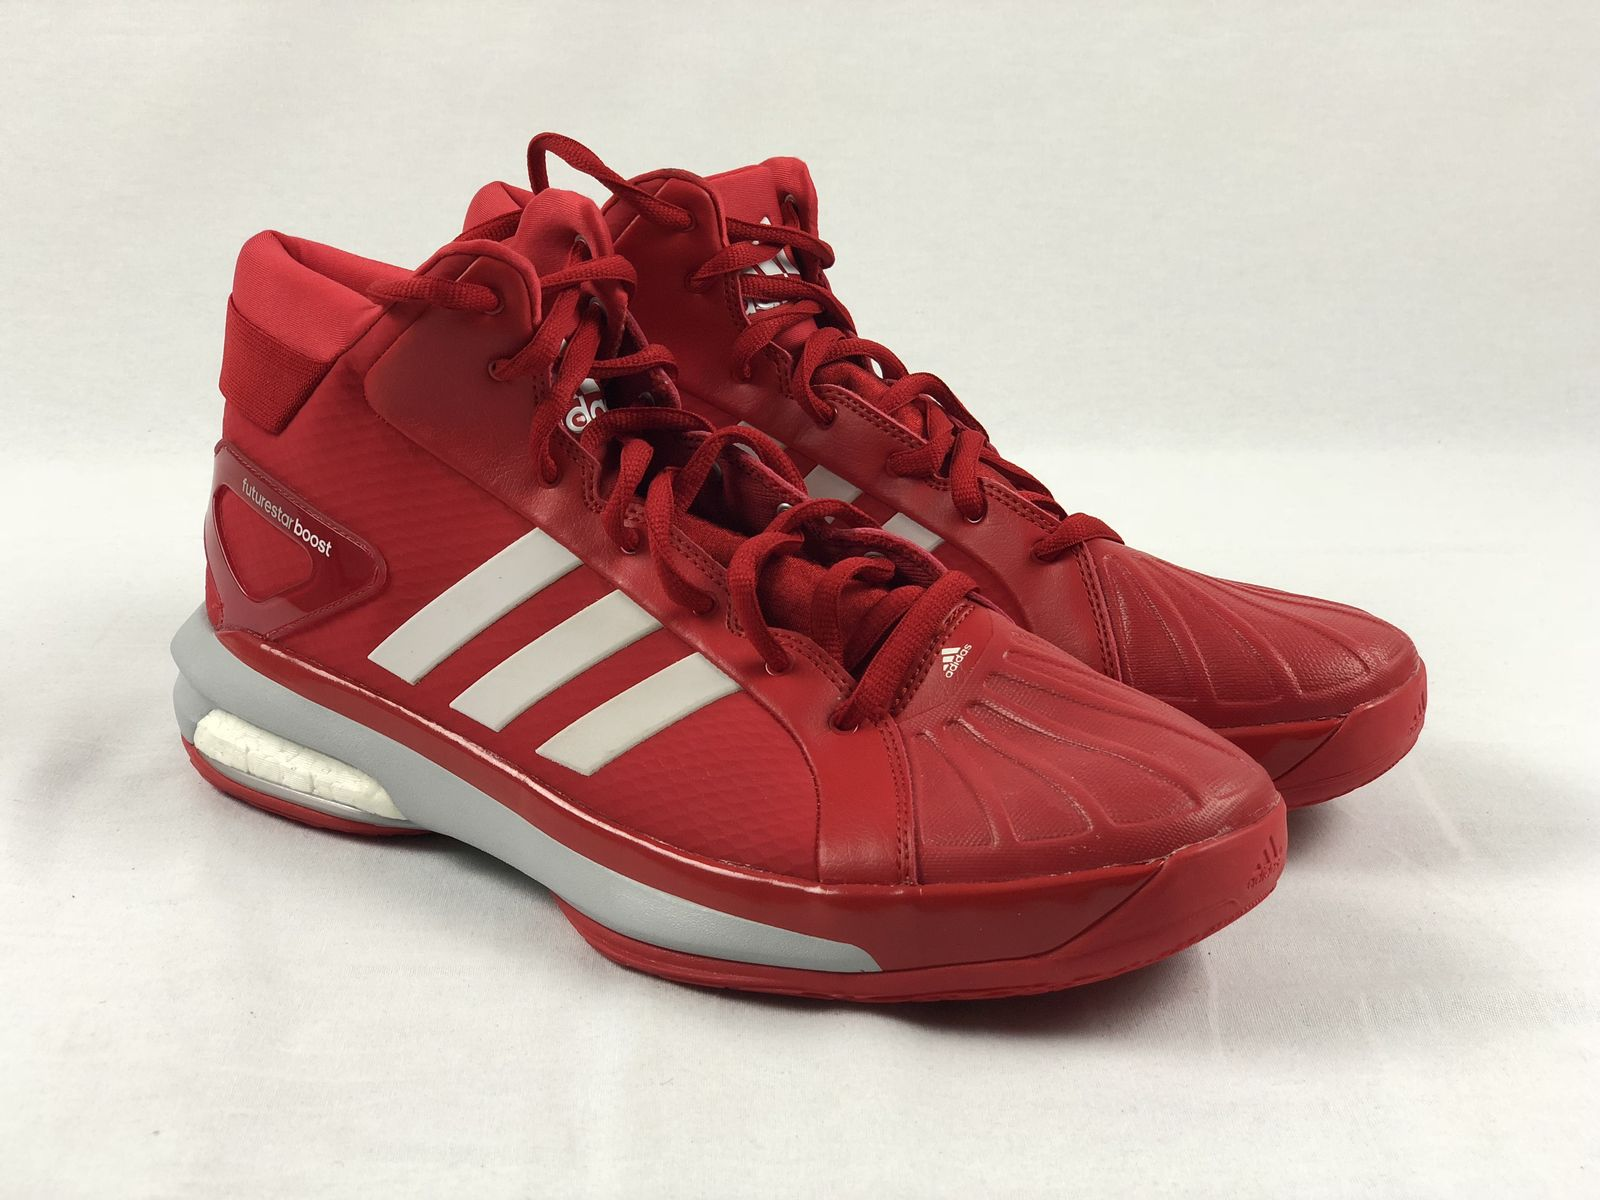 buy popular dc531 b3b3d Details about NEW adidas Future Star Boost - Red Basketball Shoes (Mens  14). Listed for charity